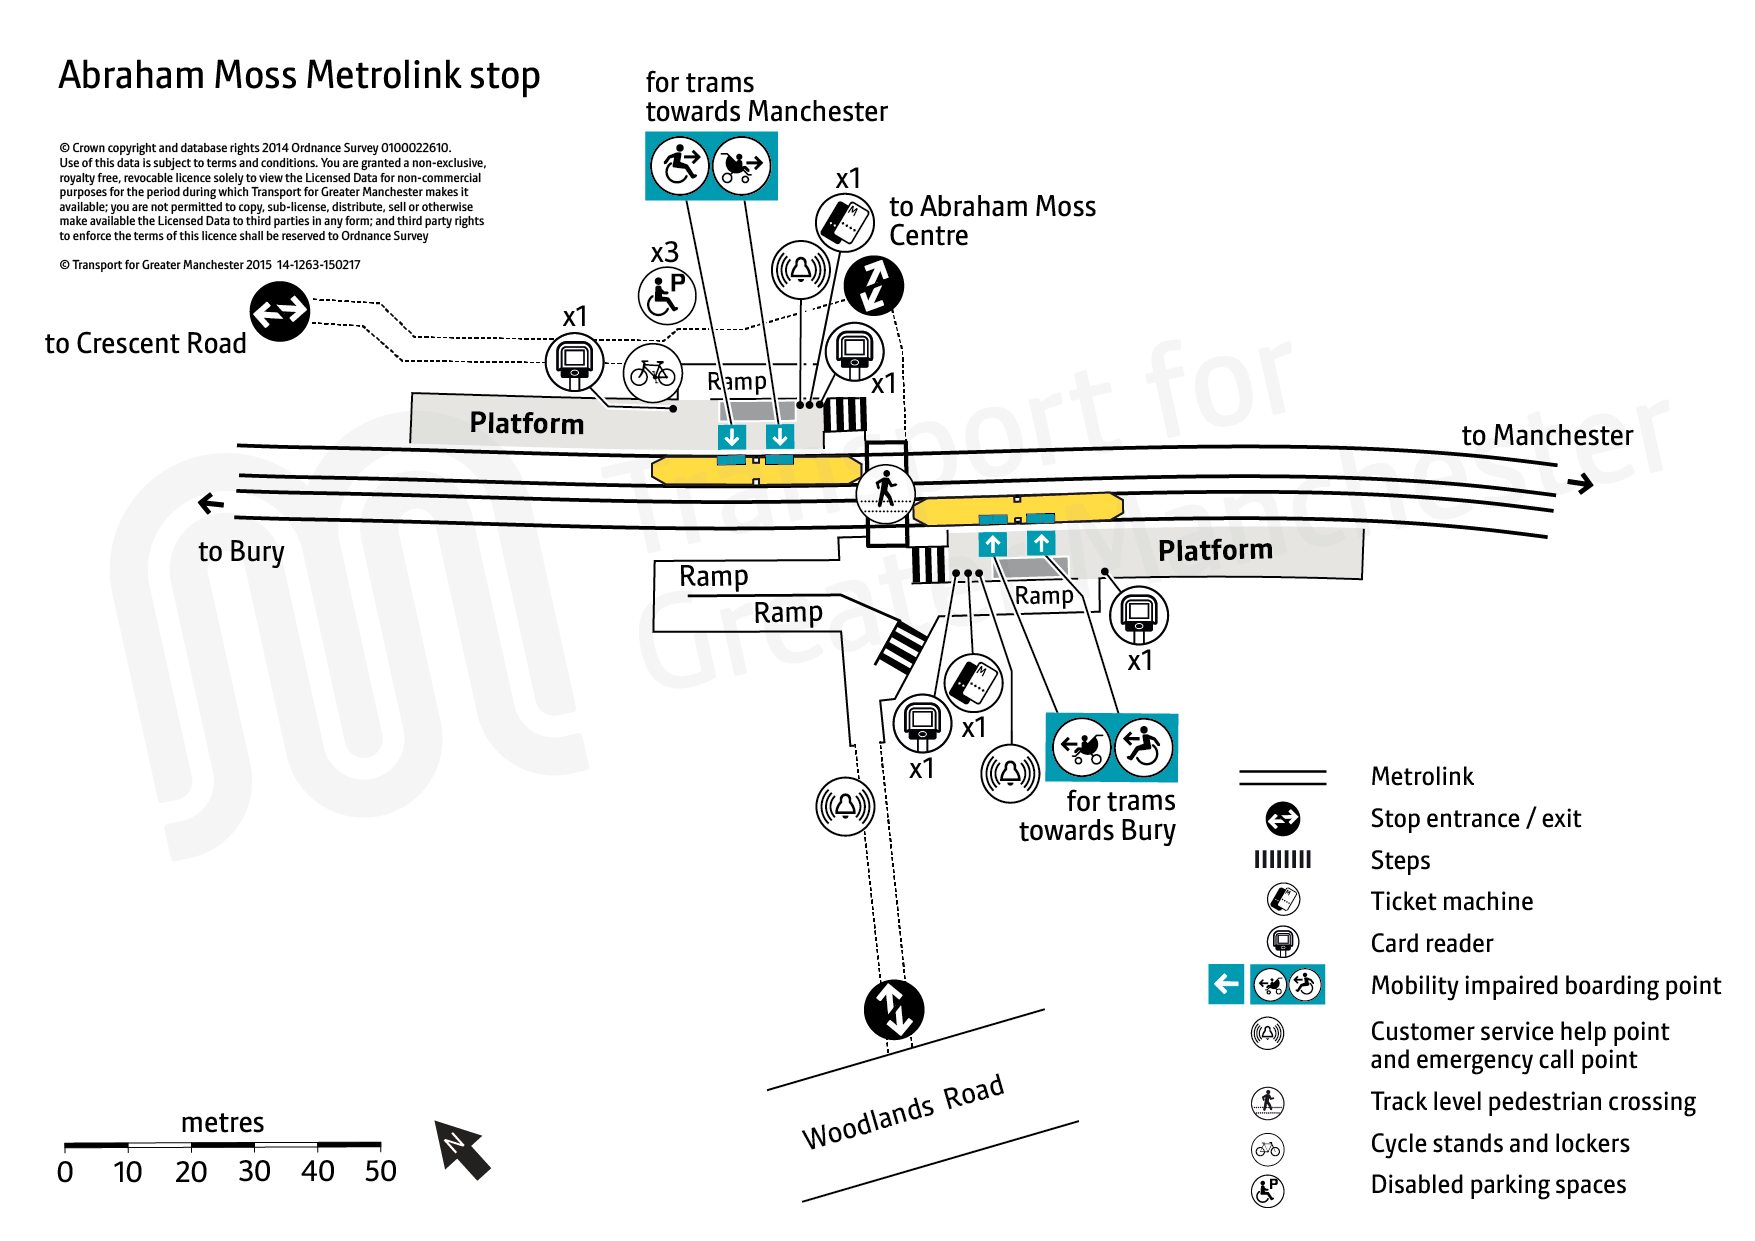 Stop map for Abraham Moss tram stop